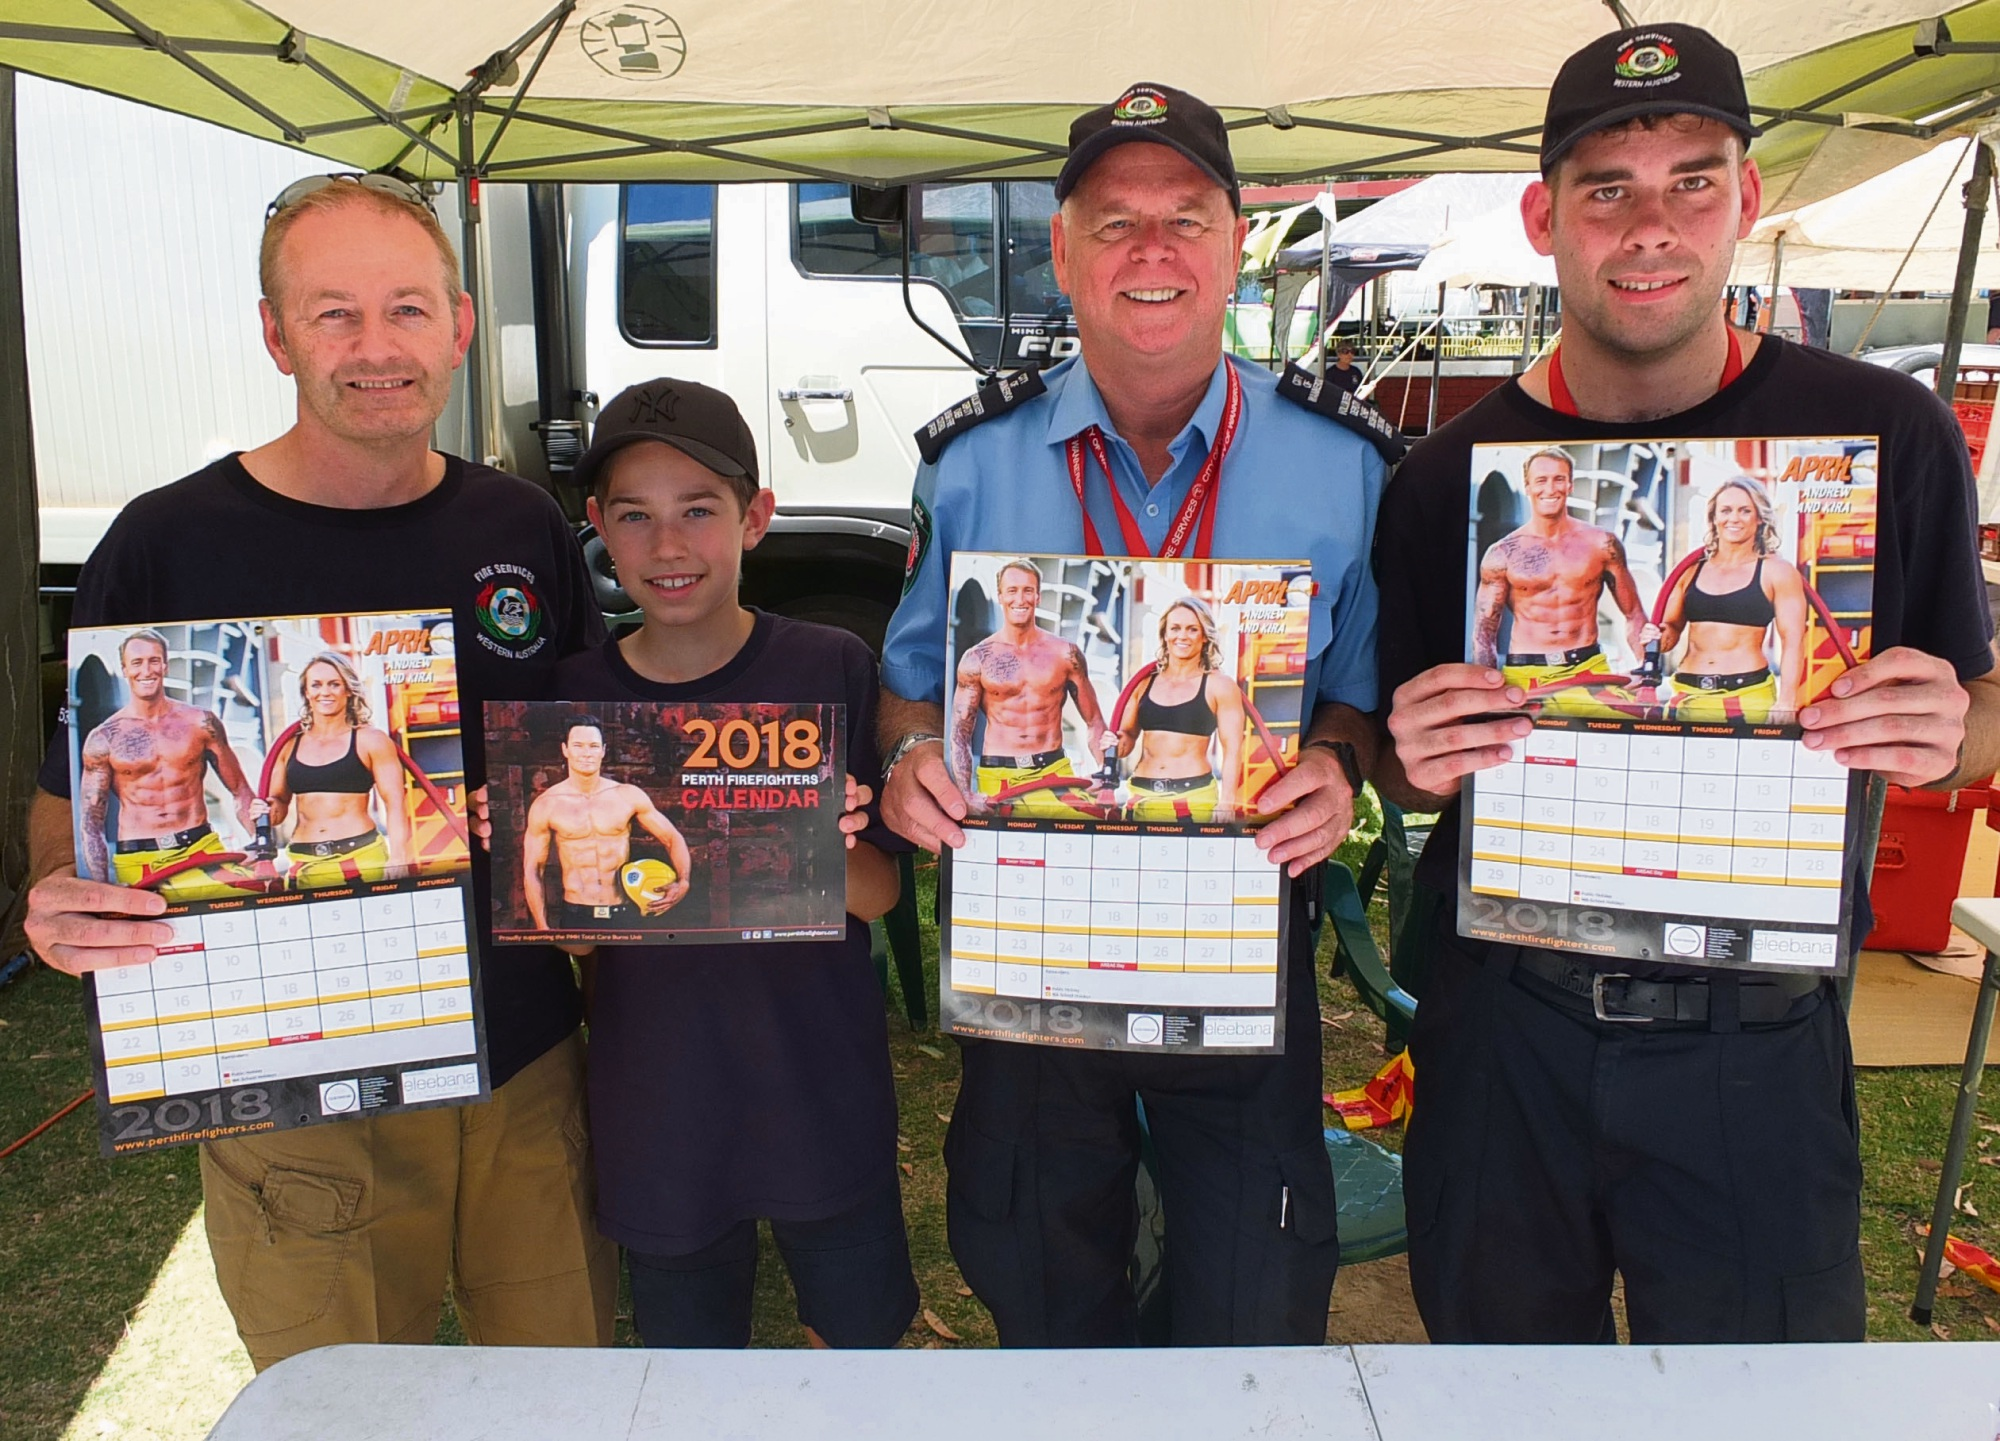 Wanneroo Central Bush Fire Brigade members Damian Duffy, Oliver Duffy, Stephen Foureur and Allan Mills with 2018 Perth Firefighters' Calendars.